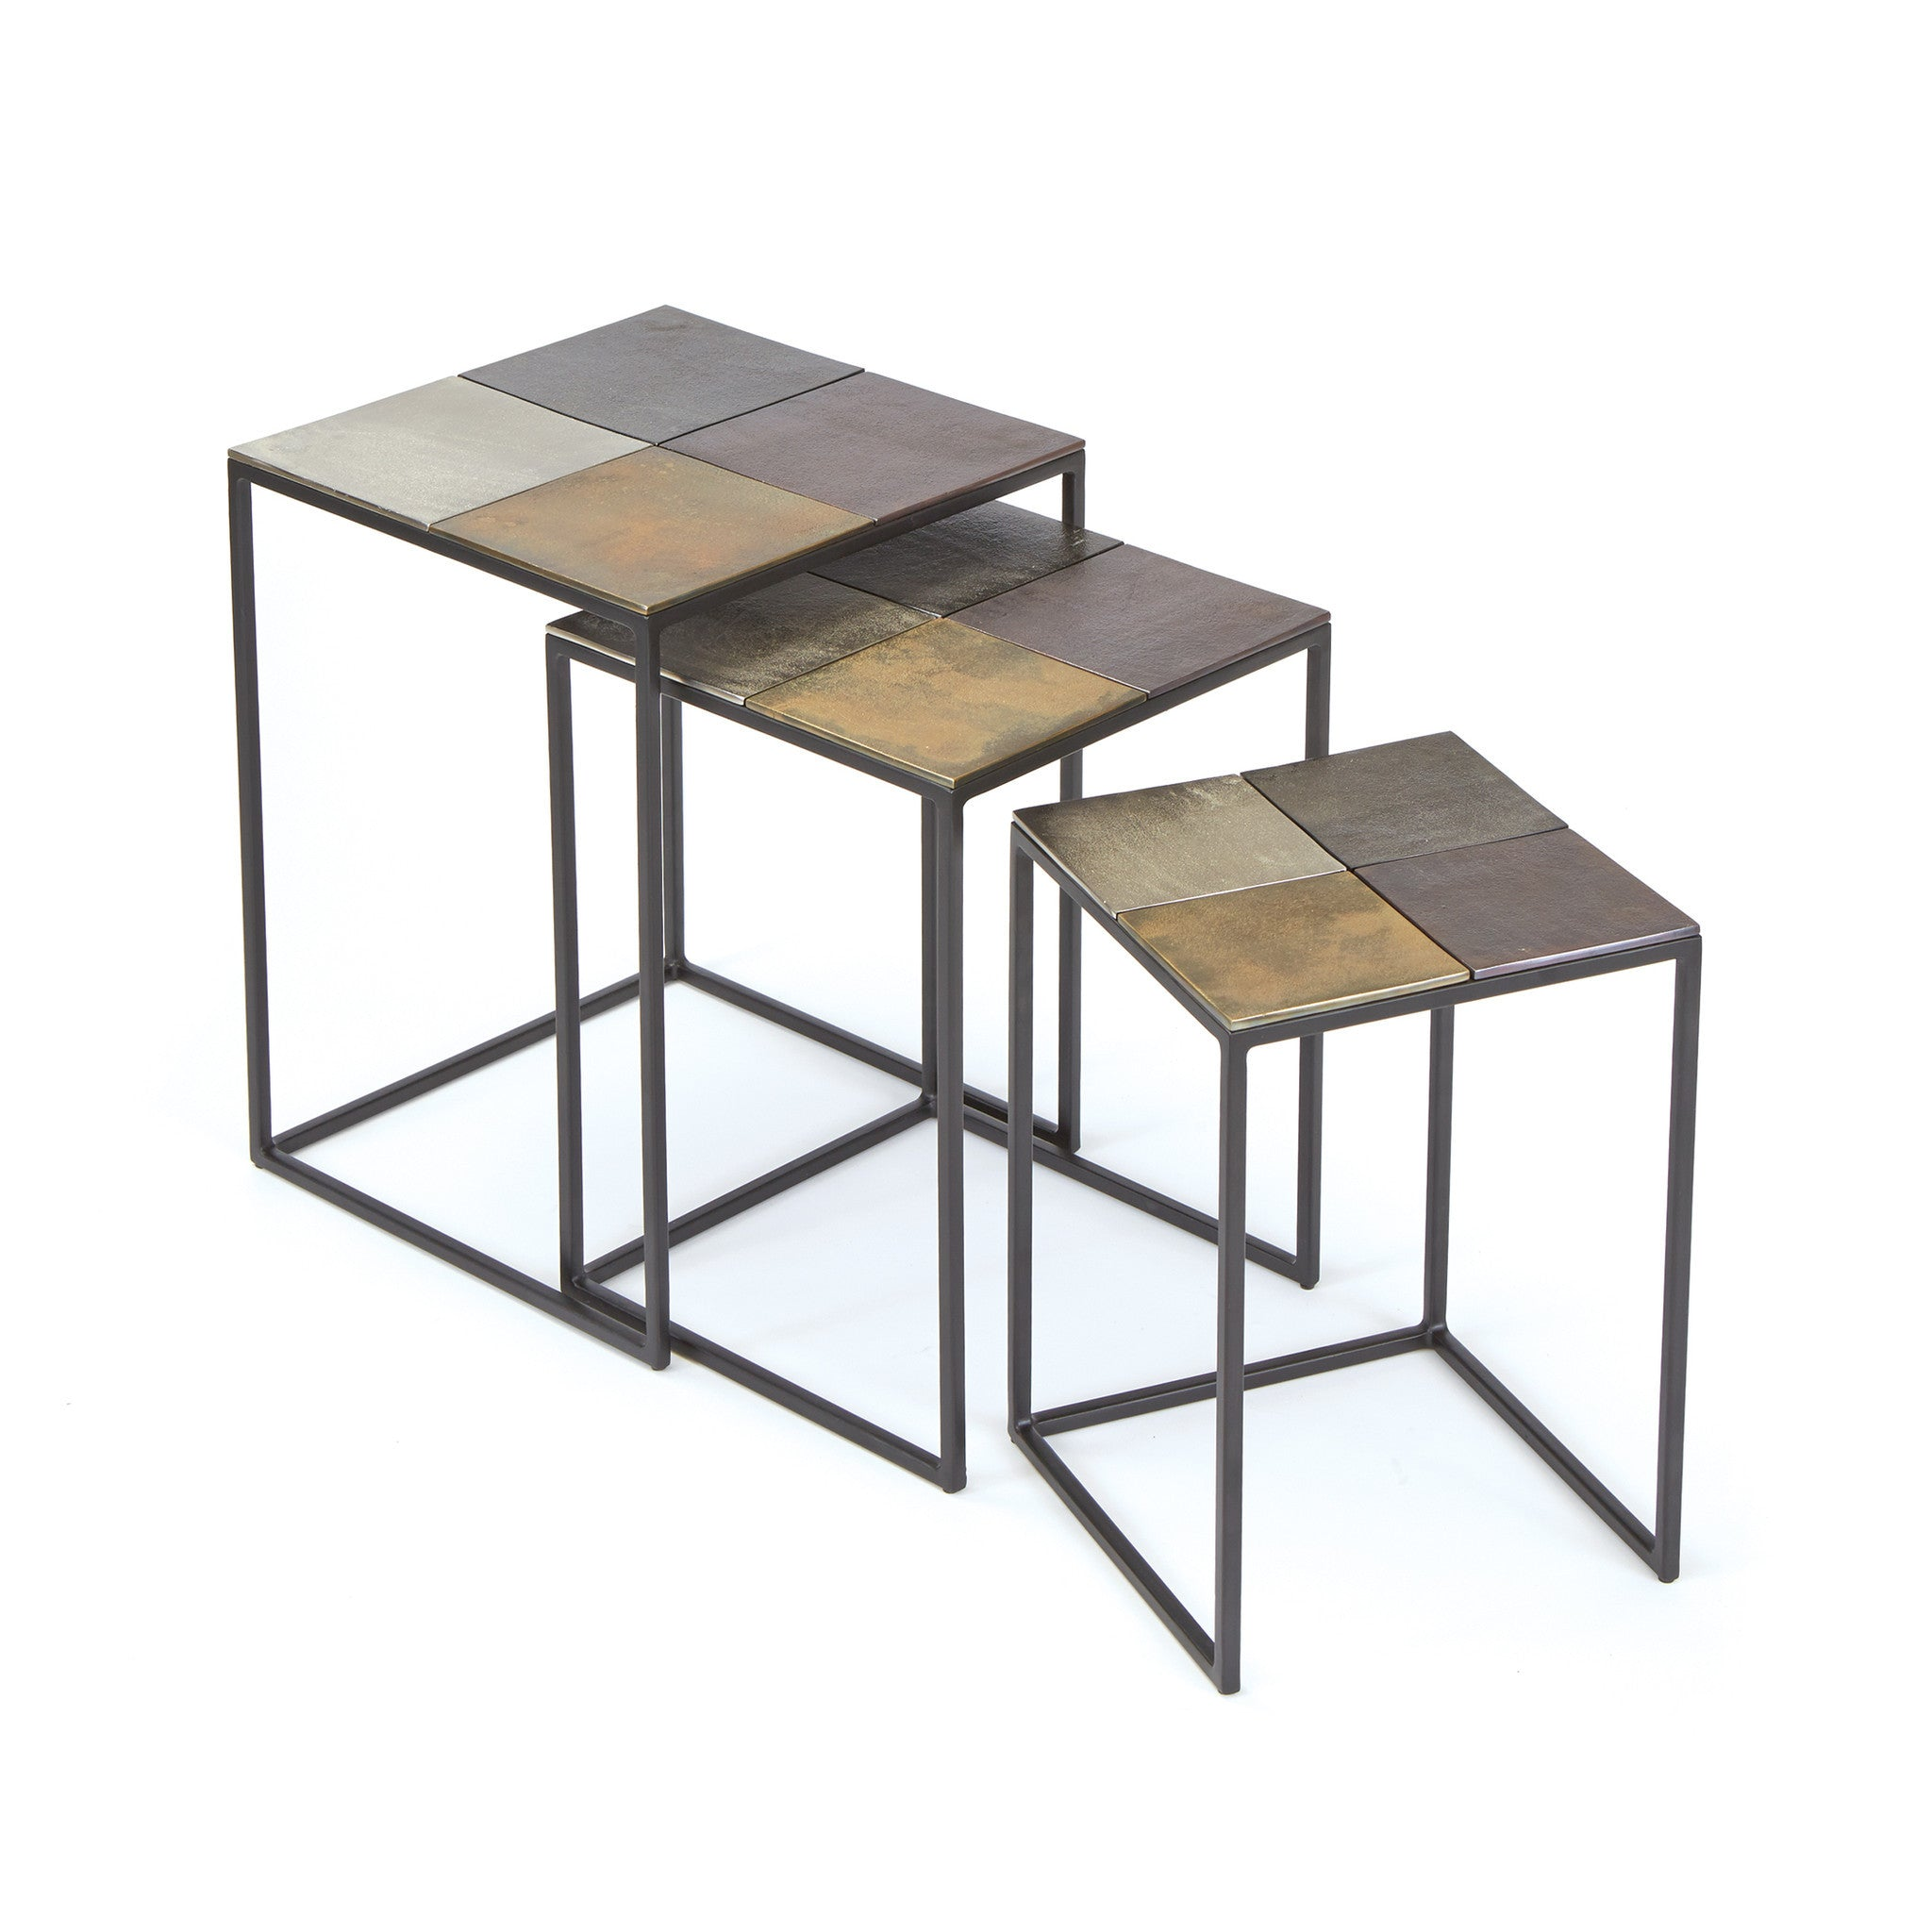 Costello Nesting Tables In Iron And Aluminum (Set Of 3) Side Tables